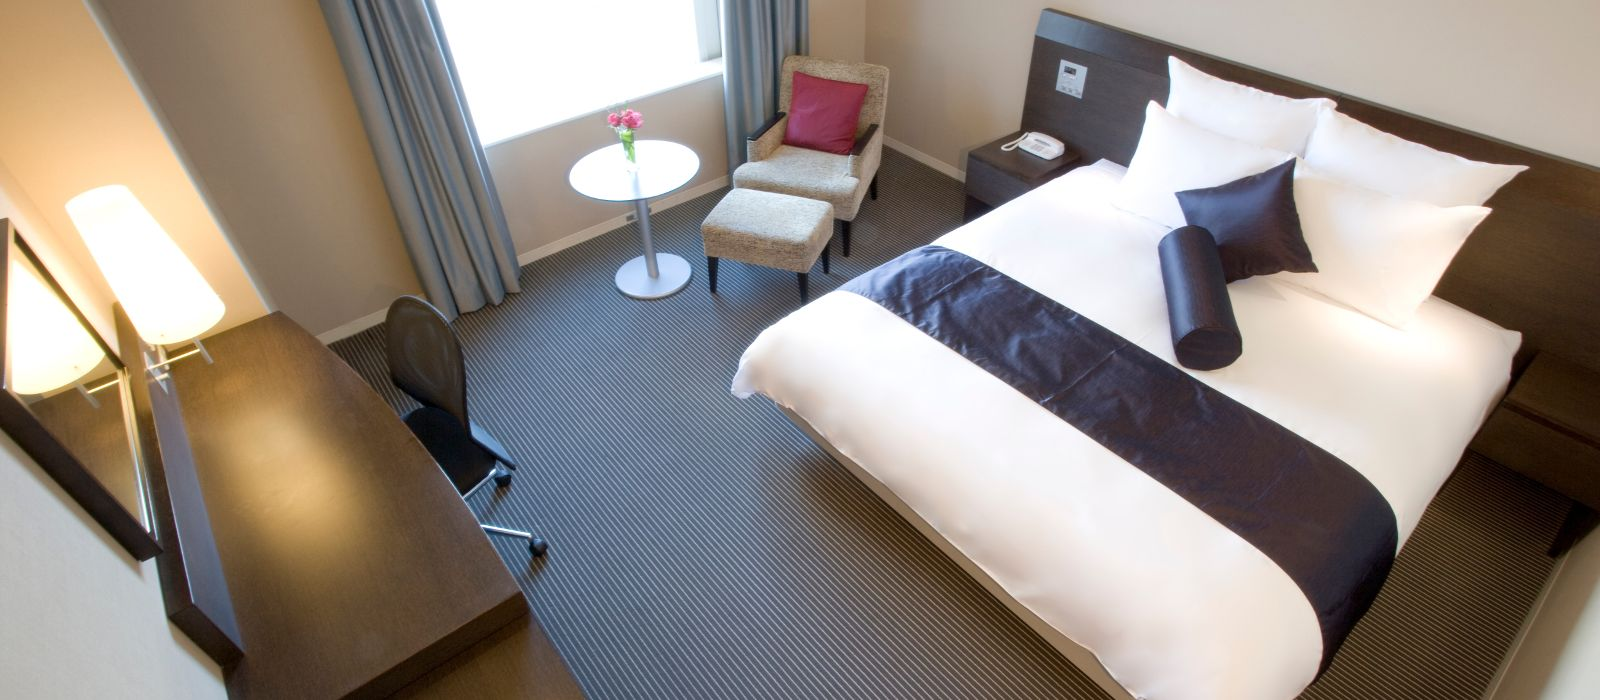 Hotel ANA Crowne Plaza Hiroshima Japan